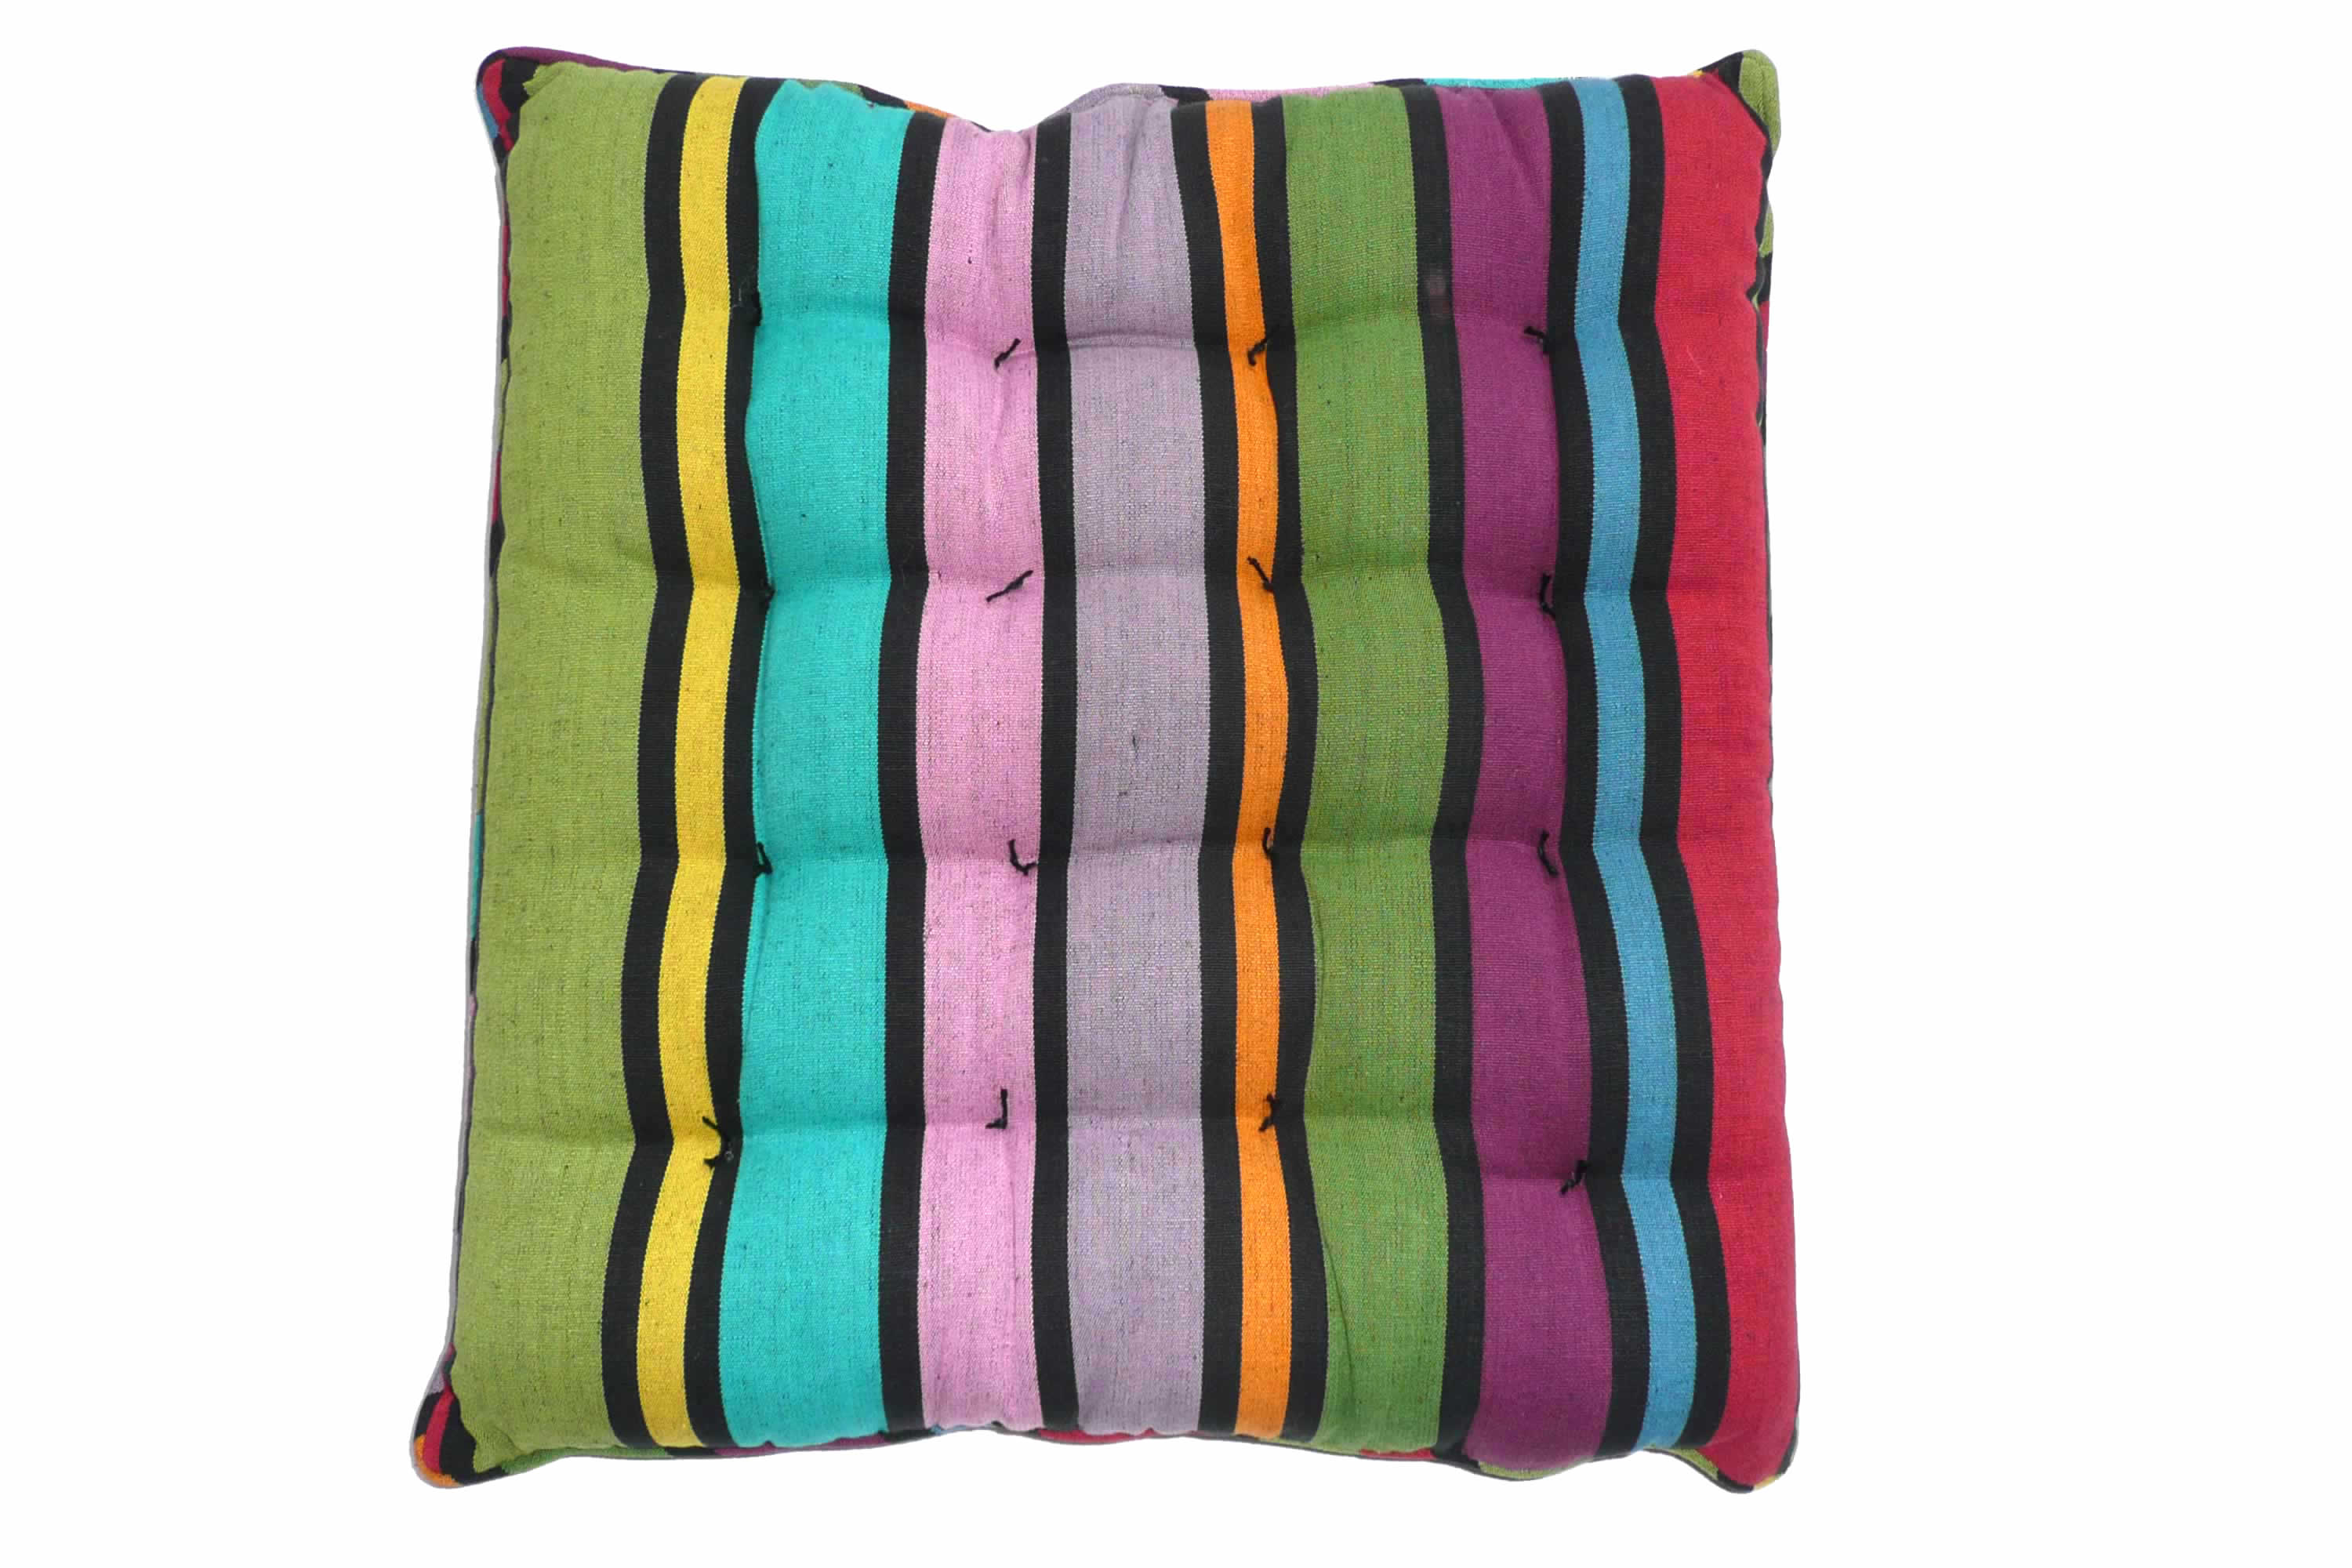 Piped Seat Pads in Bold Rainbow Stripes